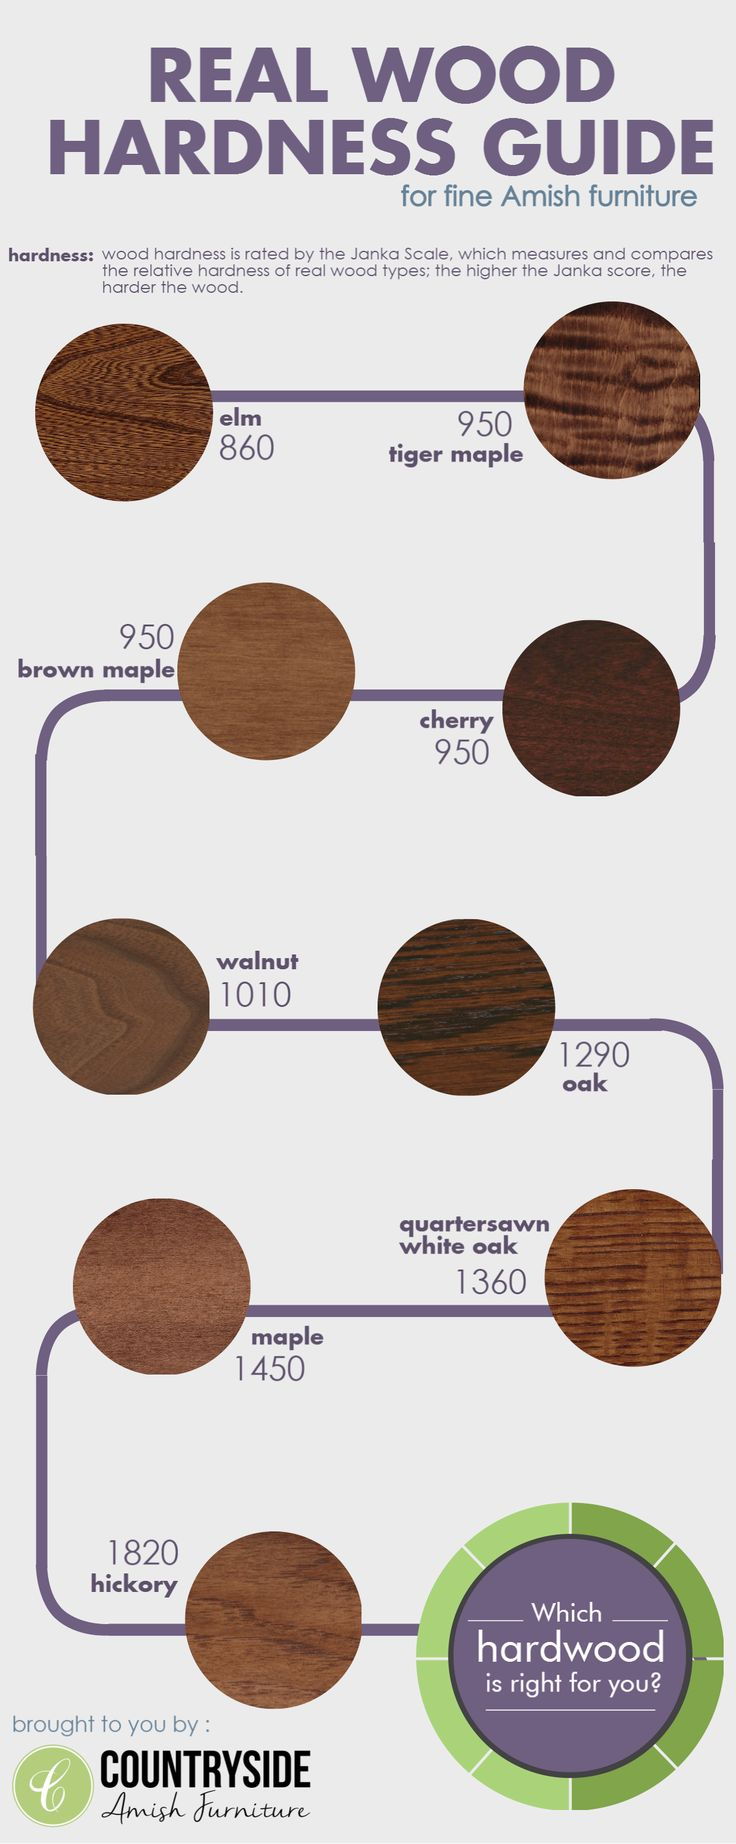 Tables greene s amish furniture part 2 - An Infographic Showing The Relative Hardness Of Domestic Hardwoods Used In Creating Fine Handcrafted Amish